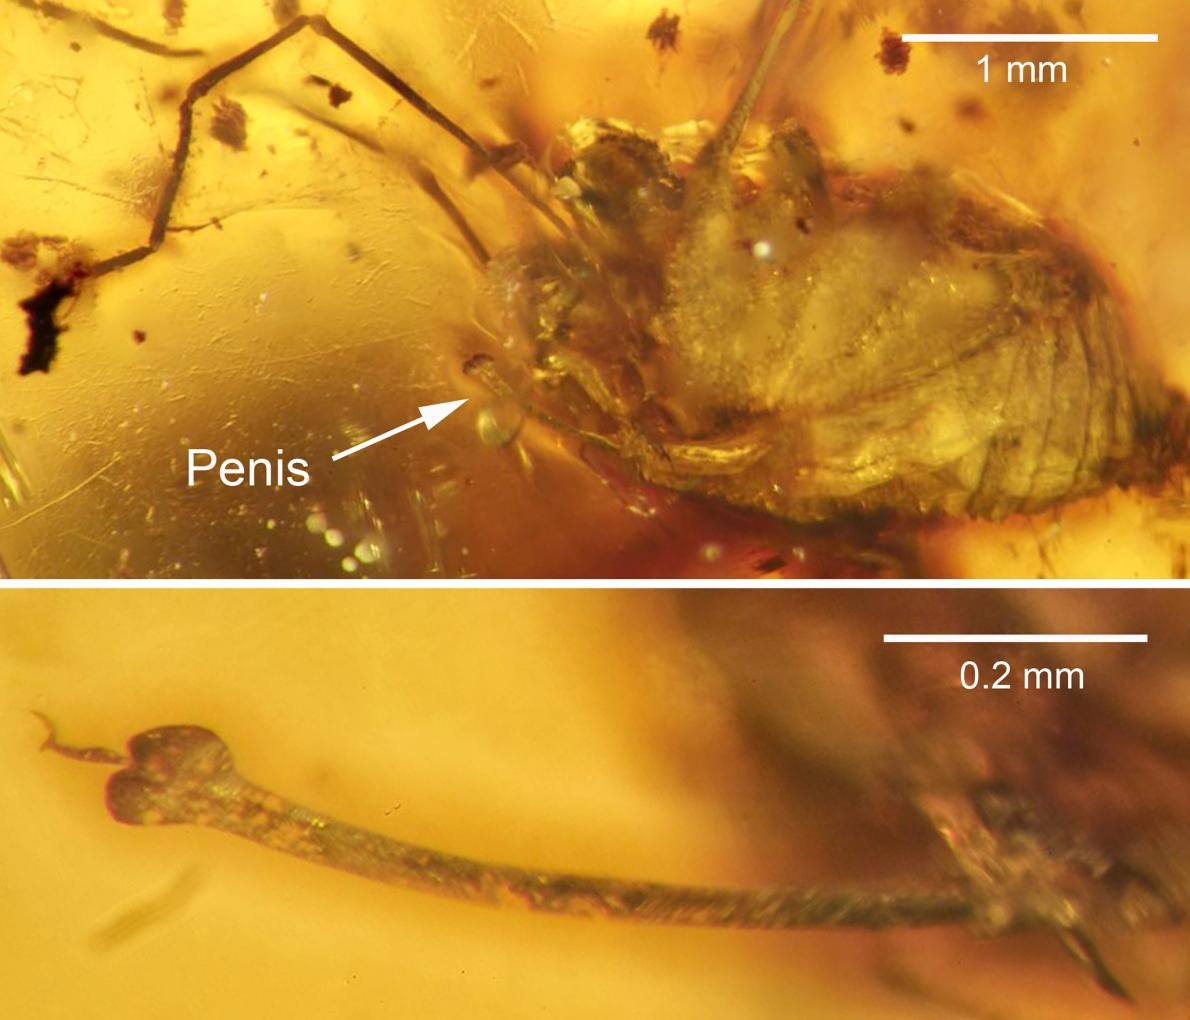 Behold the First Erect Penis Ever Found Preserved in Amber